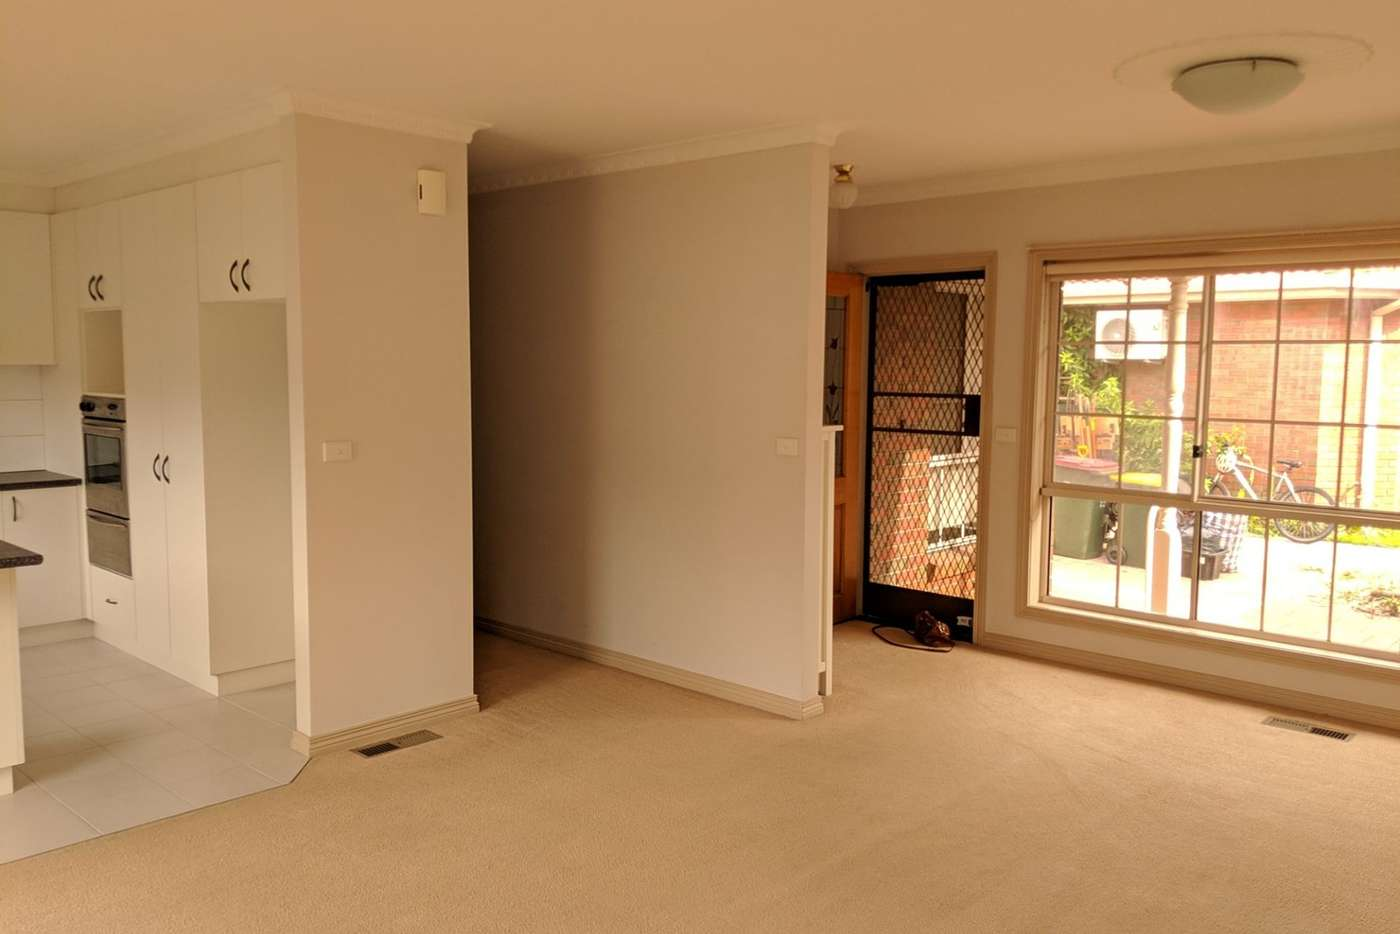 Fifth view of Homely villa listing, 3/29 Mortimore St, Bentleigh VIC 3204